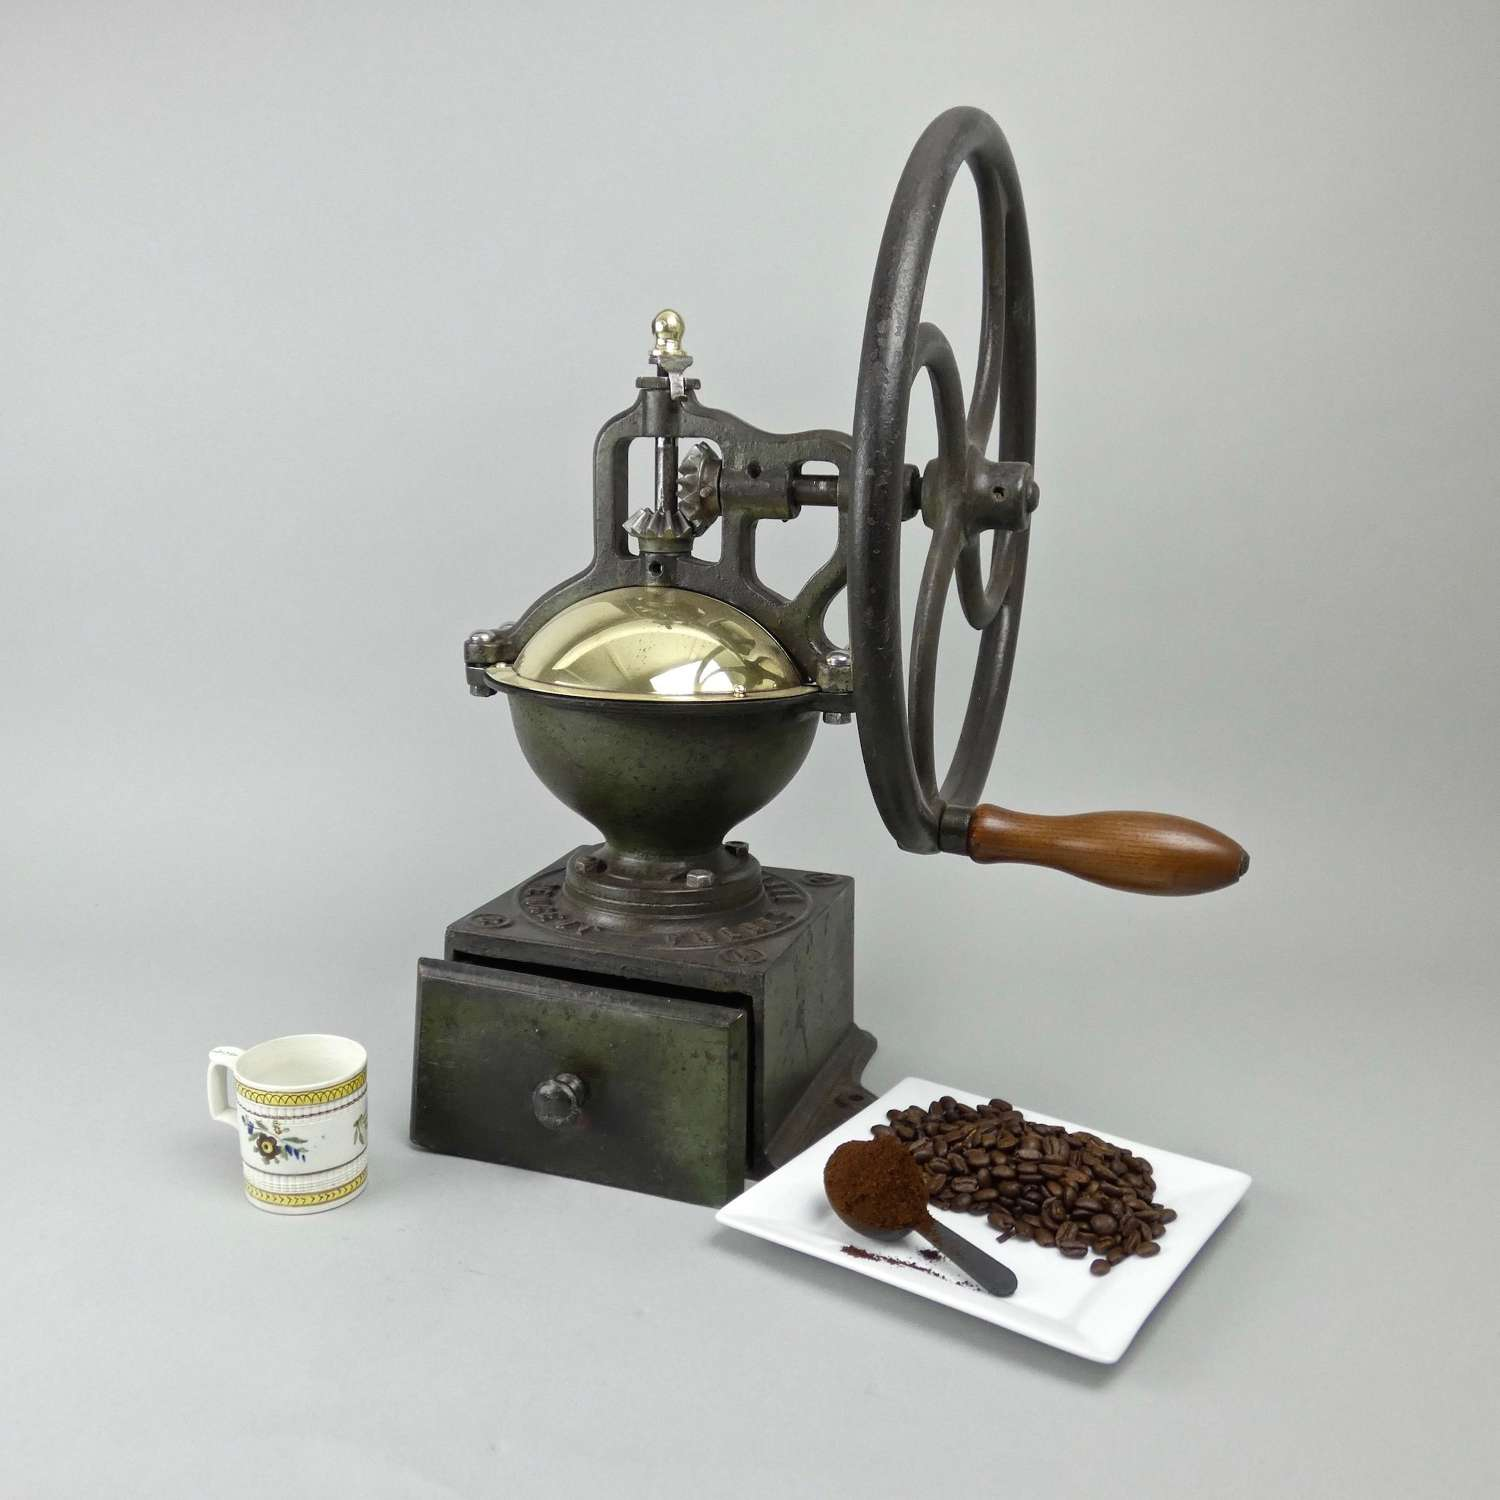 Large, Peugeot coffee mill